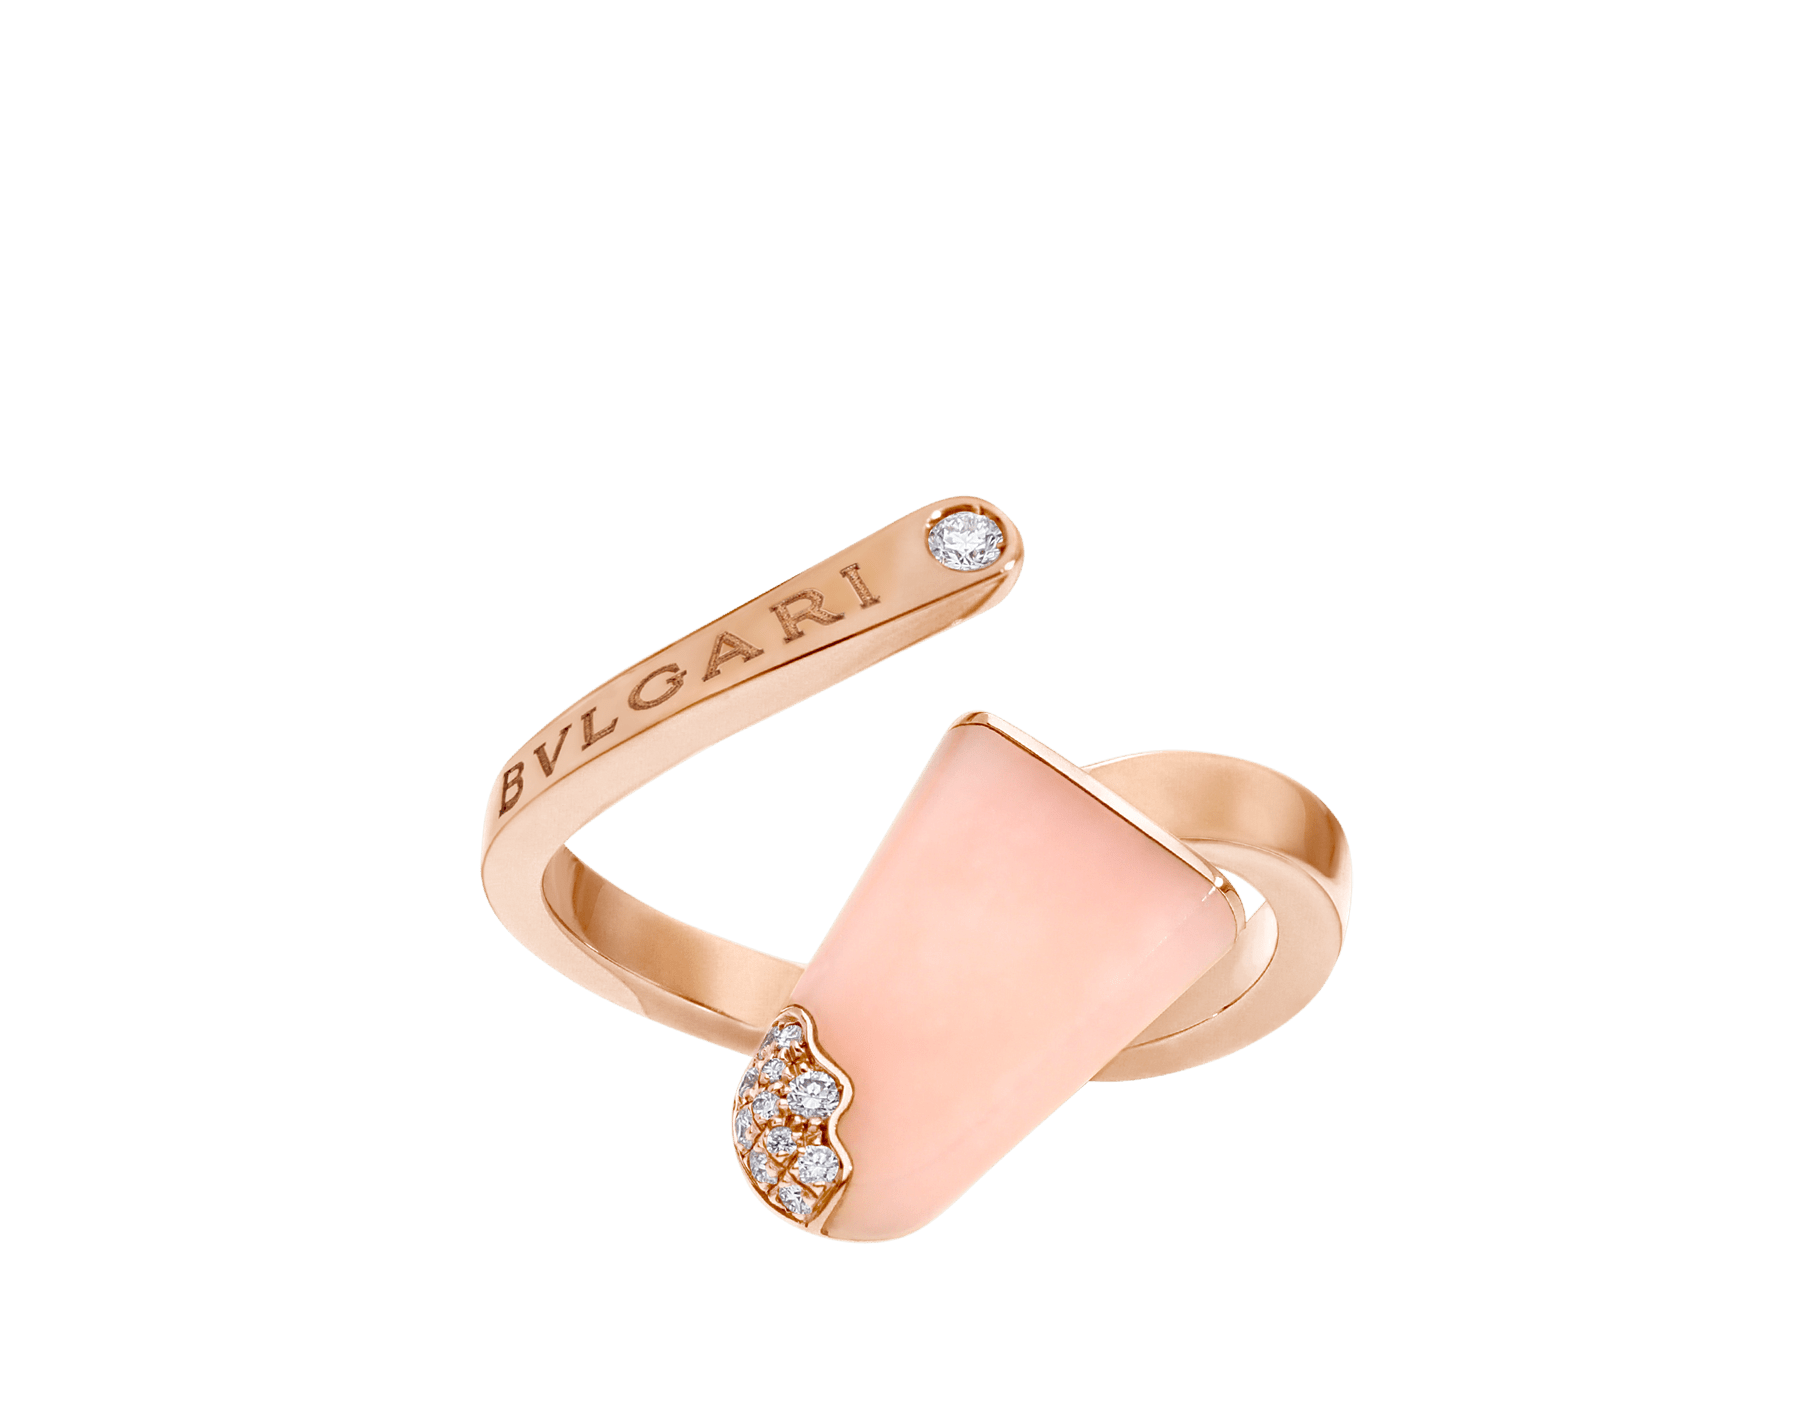 Bague BVLGARI BVLGARI en or rose 18 K sertie d'opale rose et pavé diamants AN858657 image 1